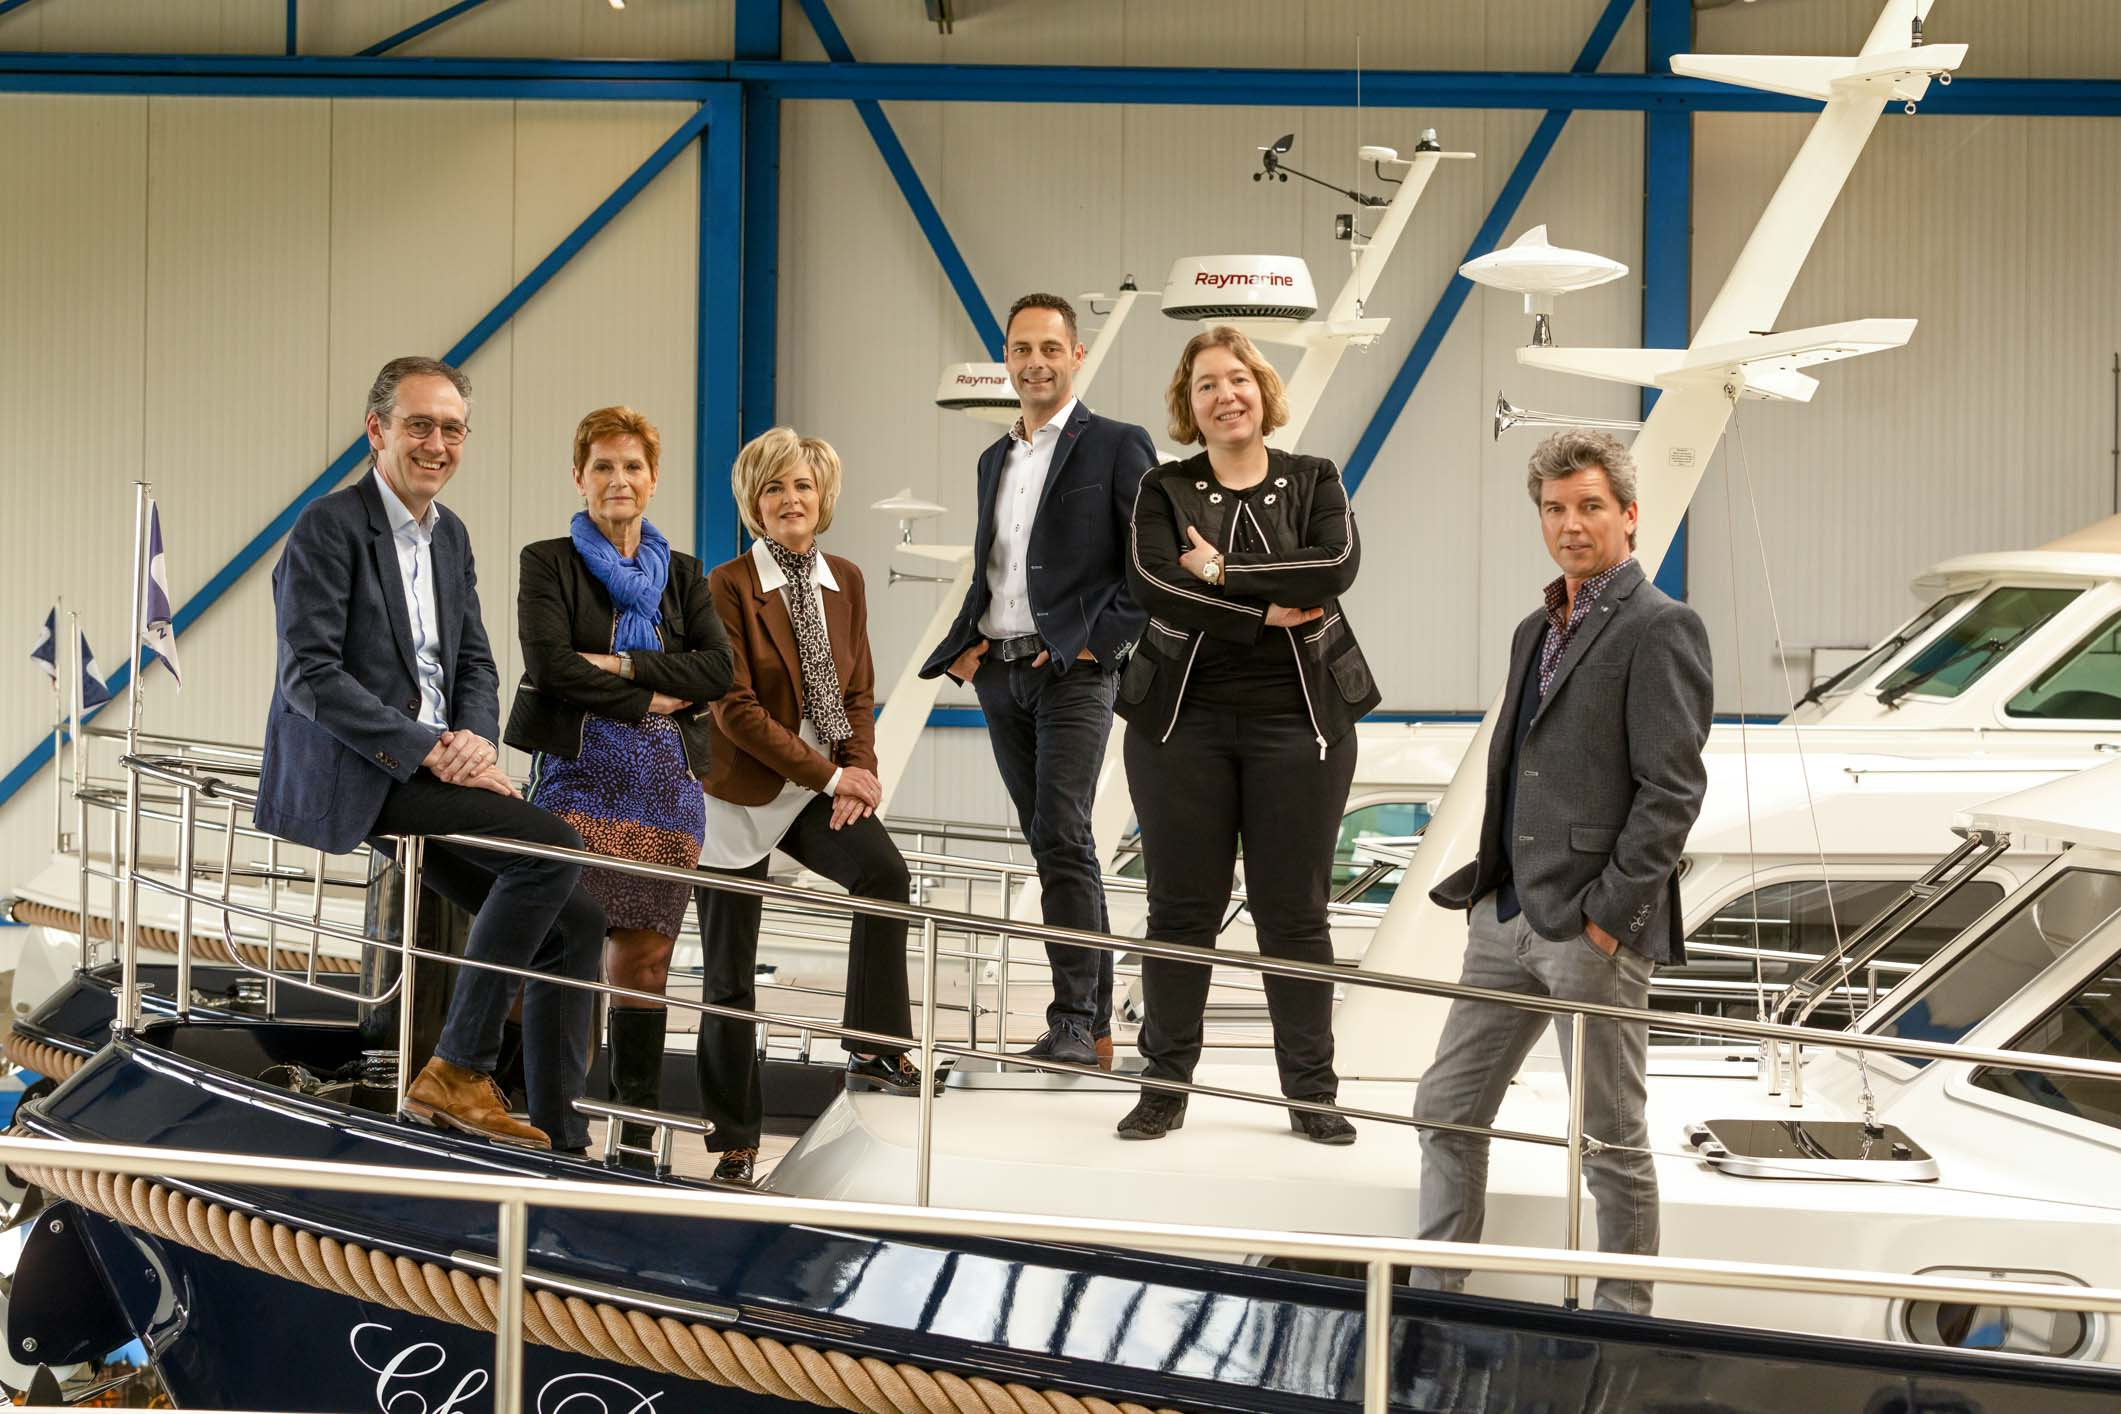 Linssen Yachts management team